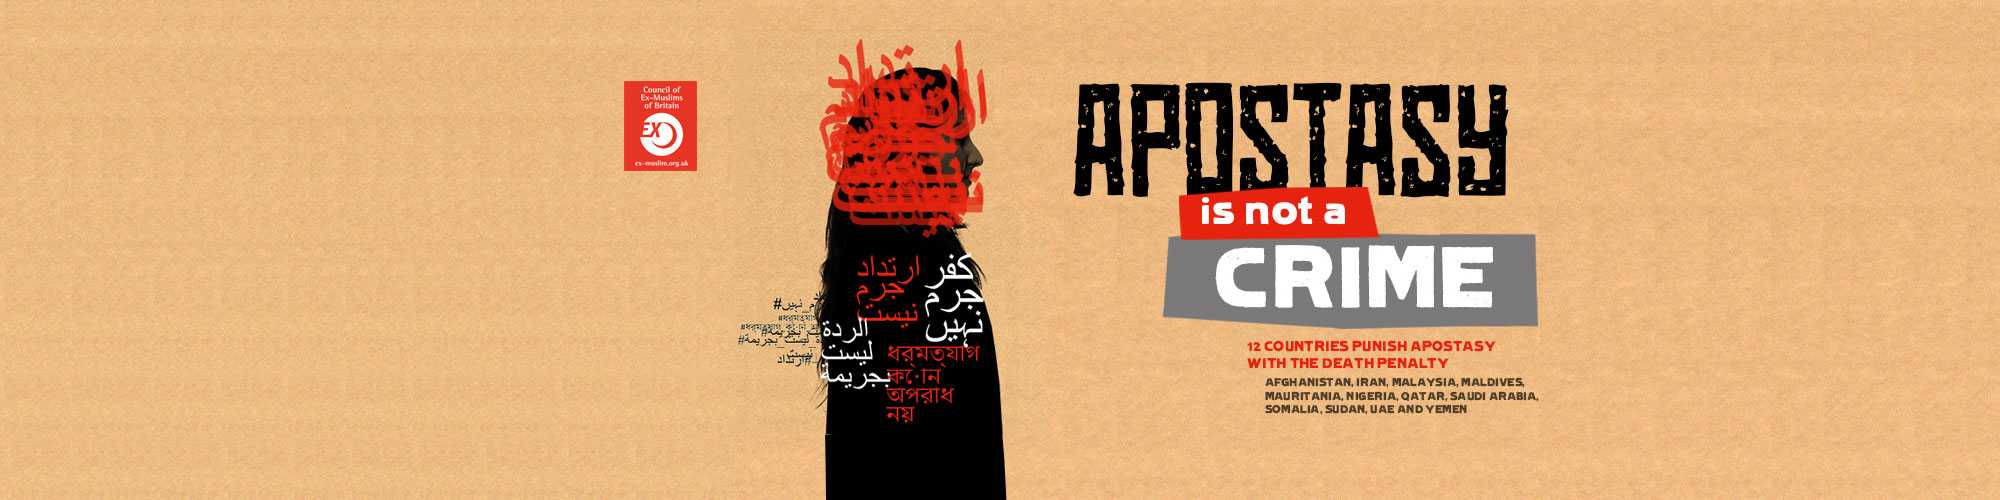 Apostasy is not a crime graphic